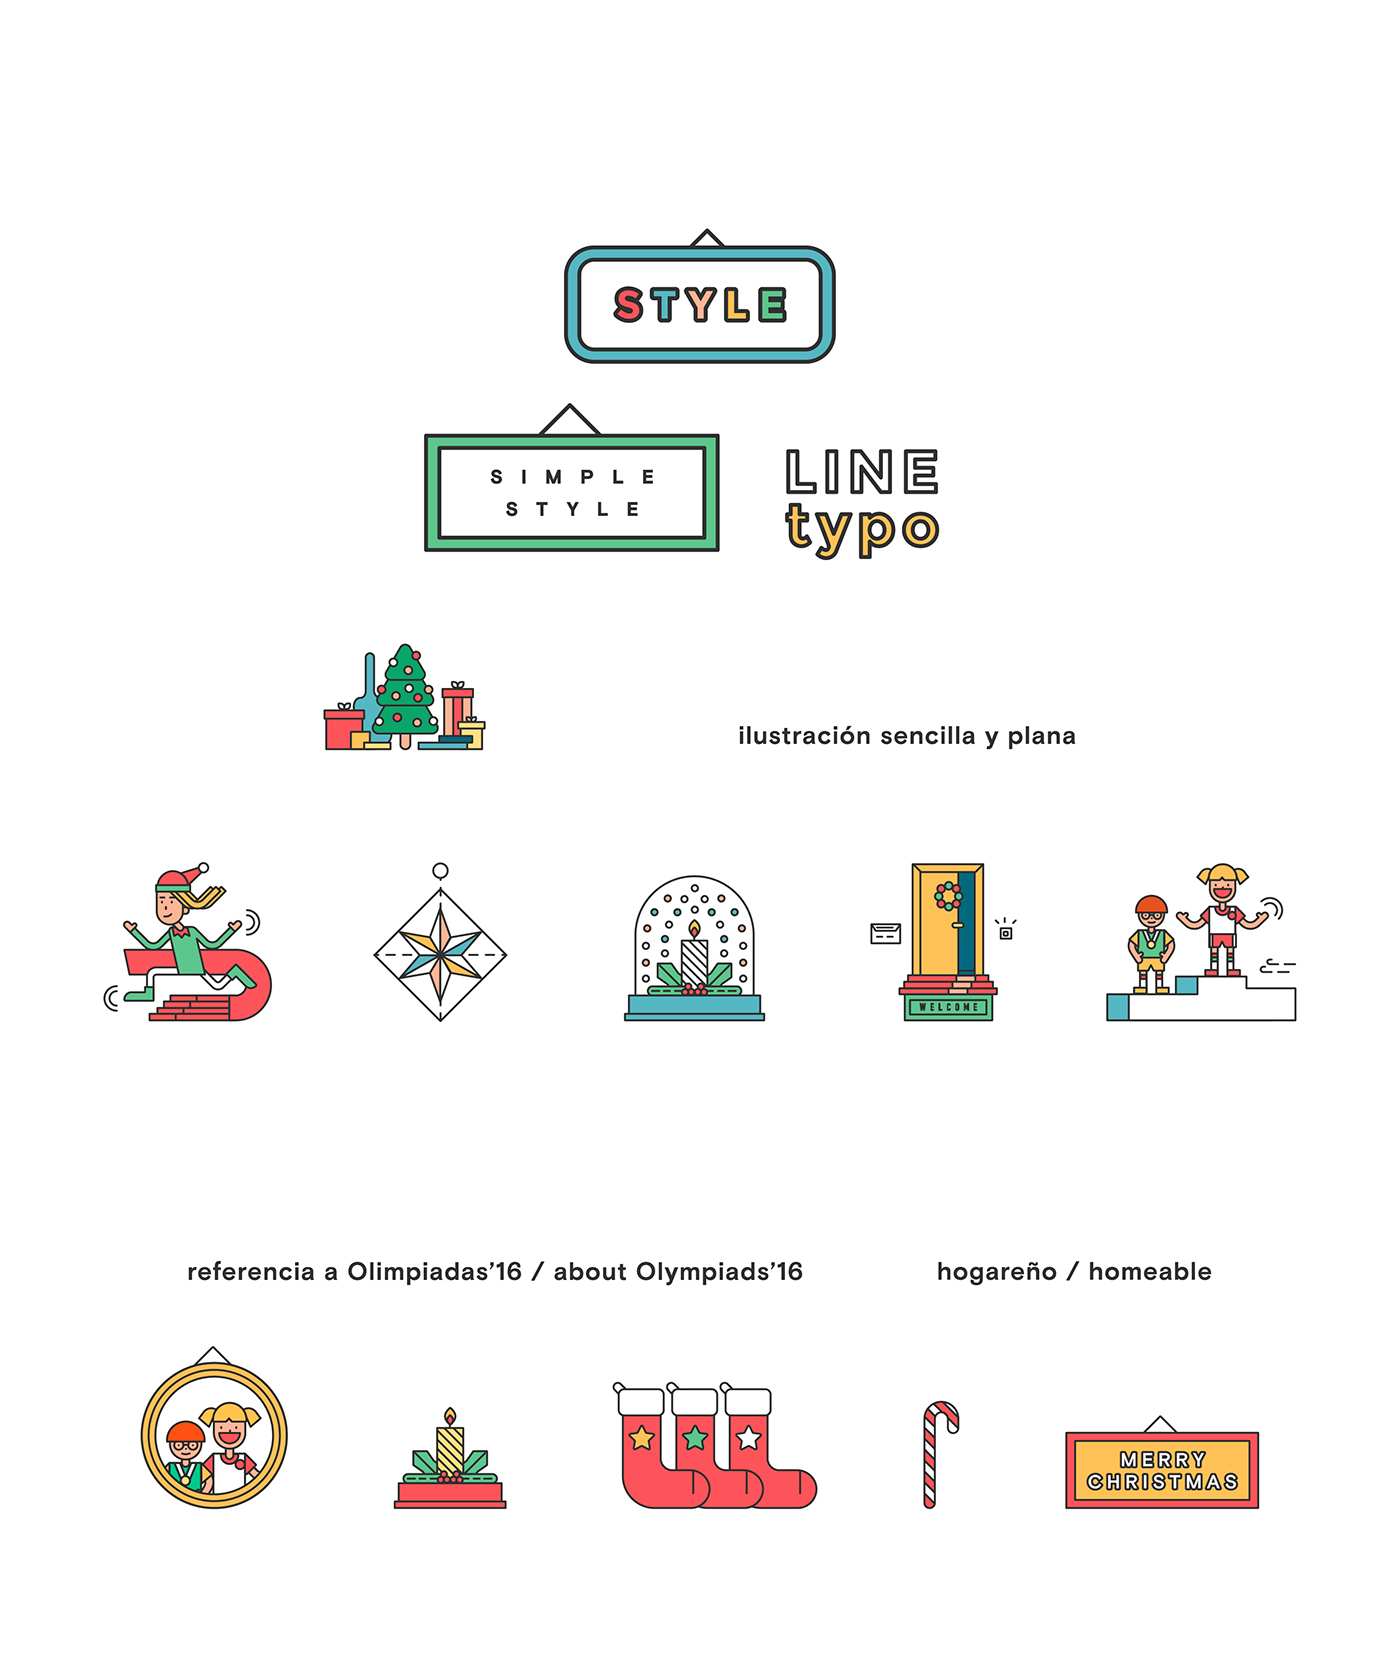 Web Design  ILLUSTRATION  inditex Christmas Christmas Campaign Olympic Games campaign2016